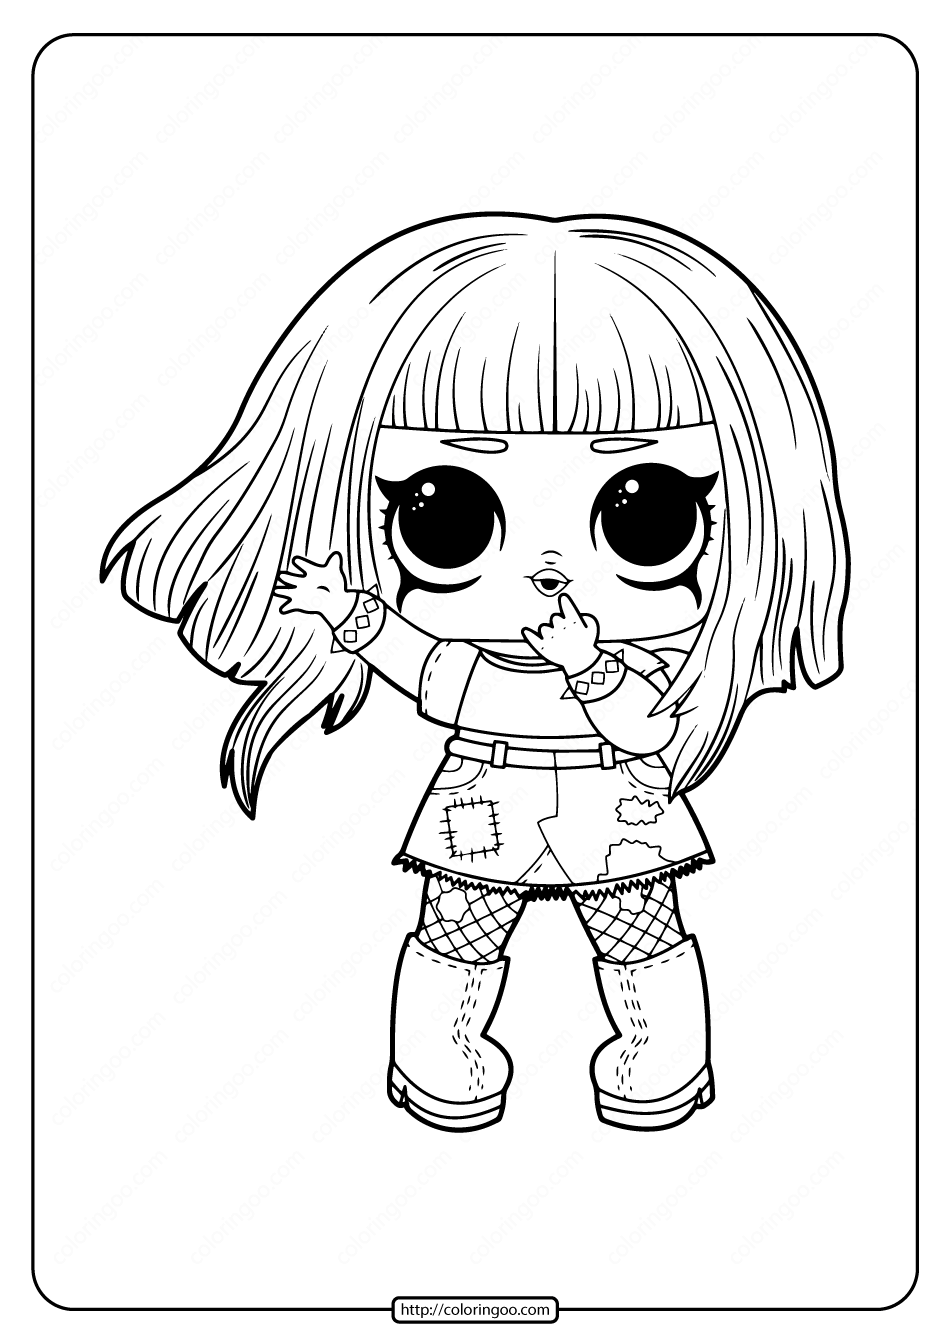 lol toy coloring pages lol coloring pages black and white ball shaped toys with lol coloring toy pages